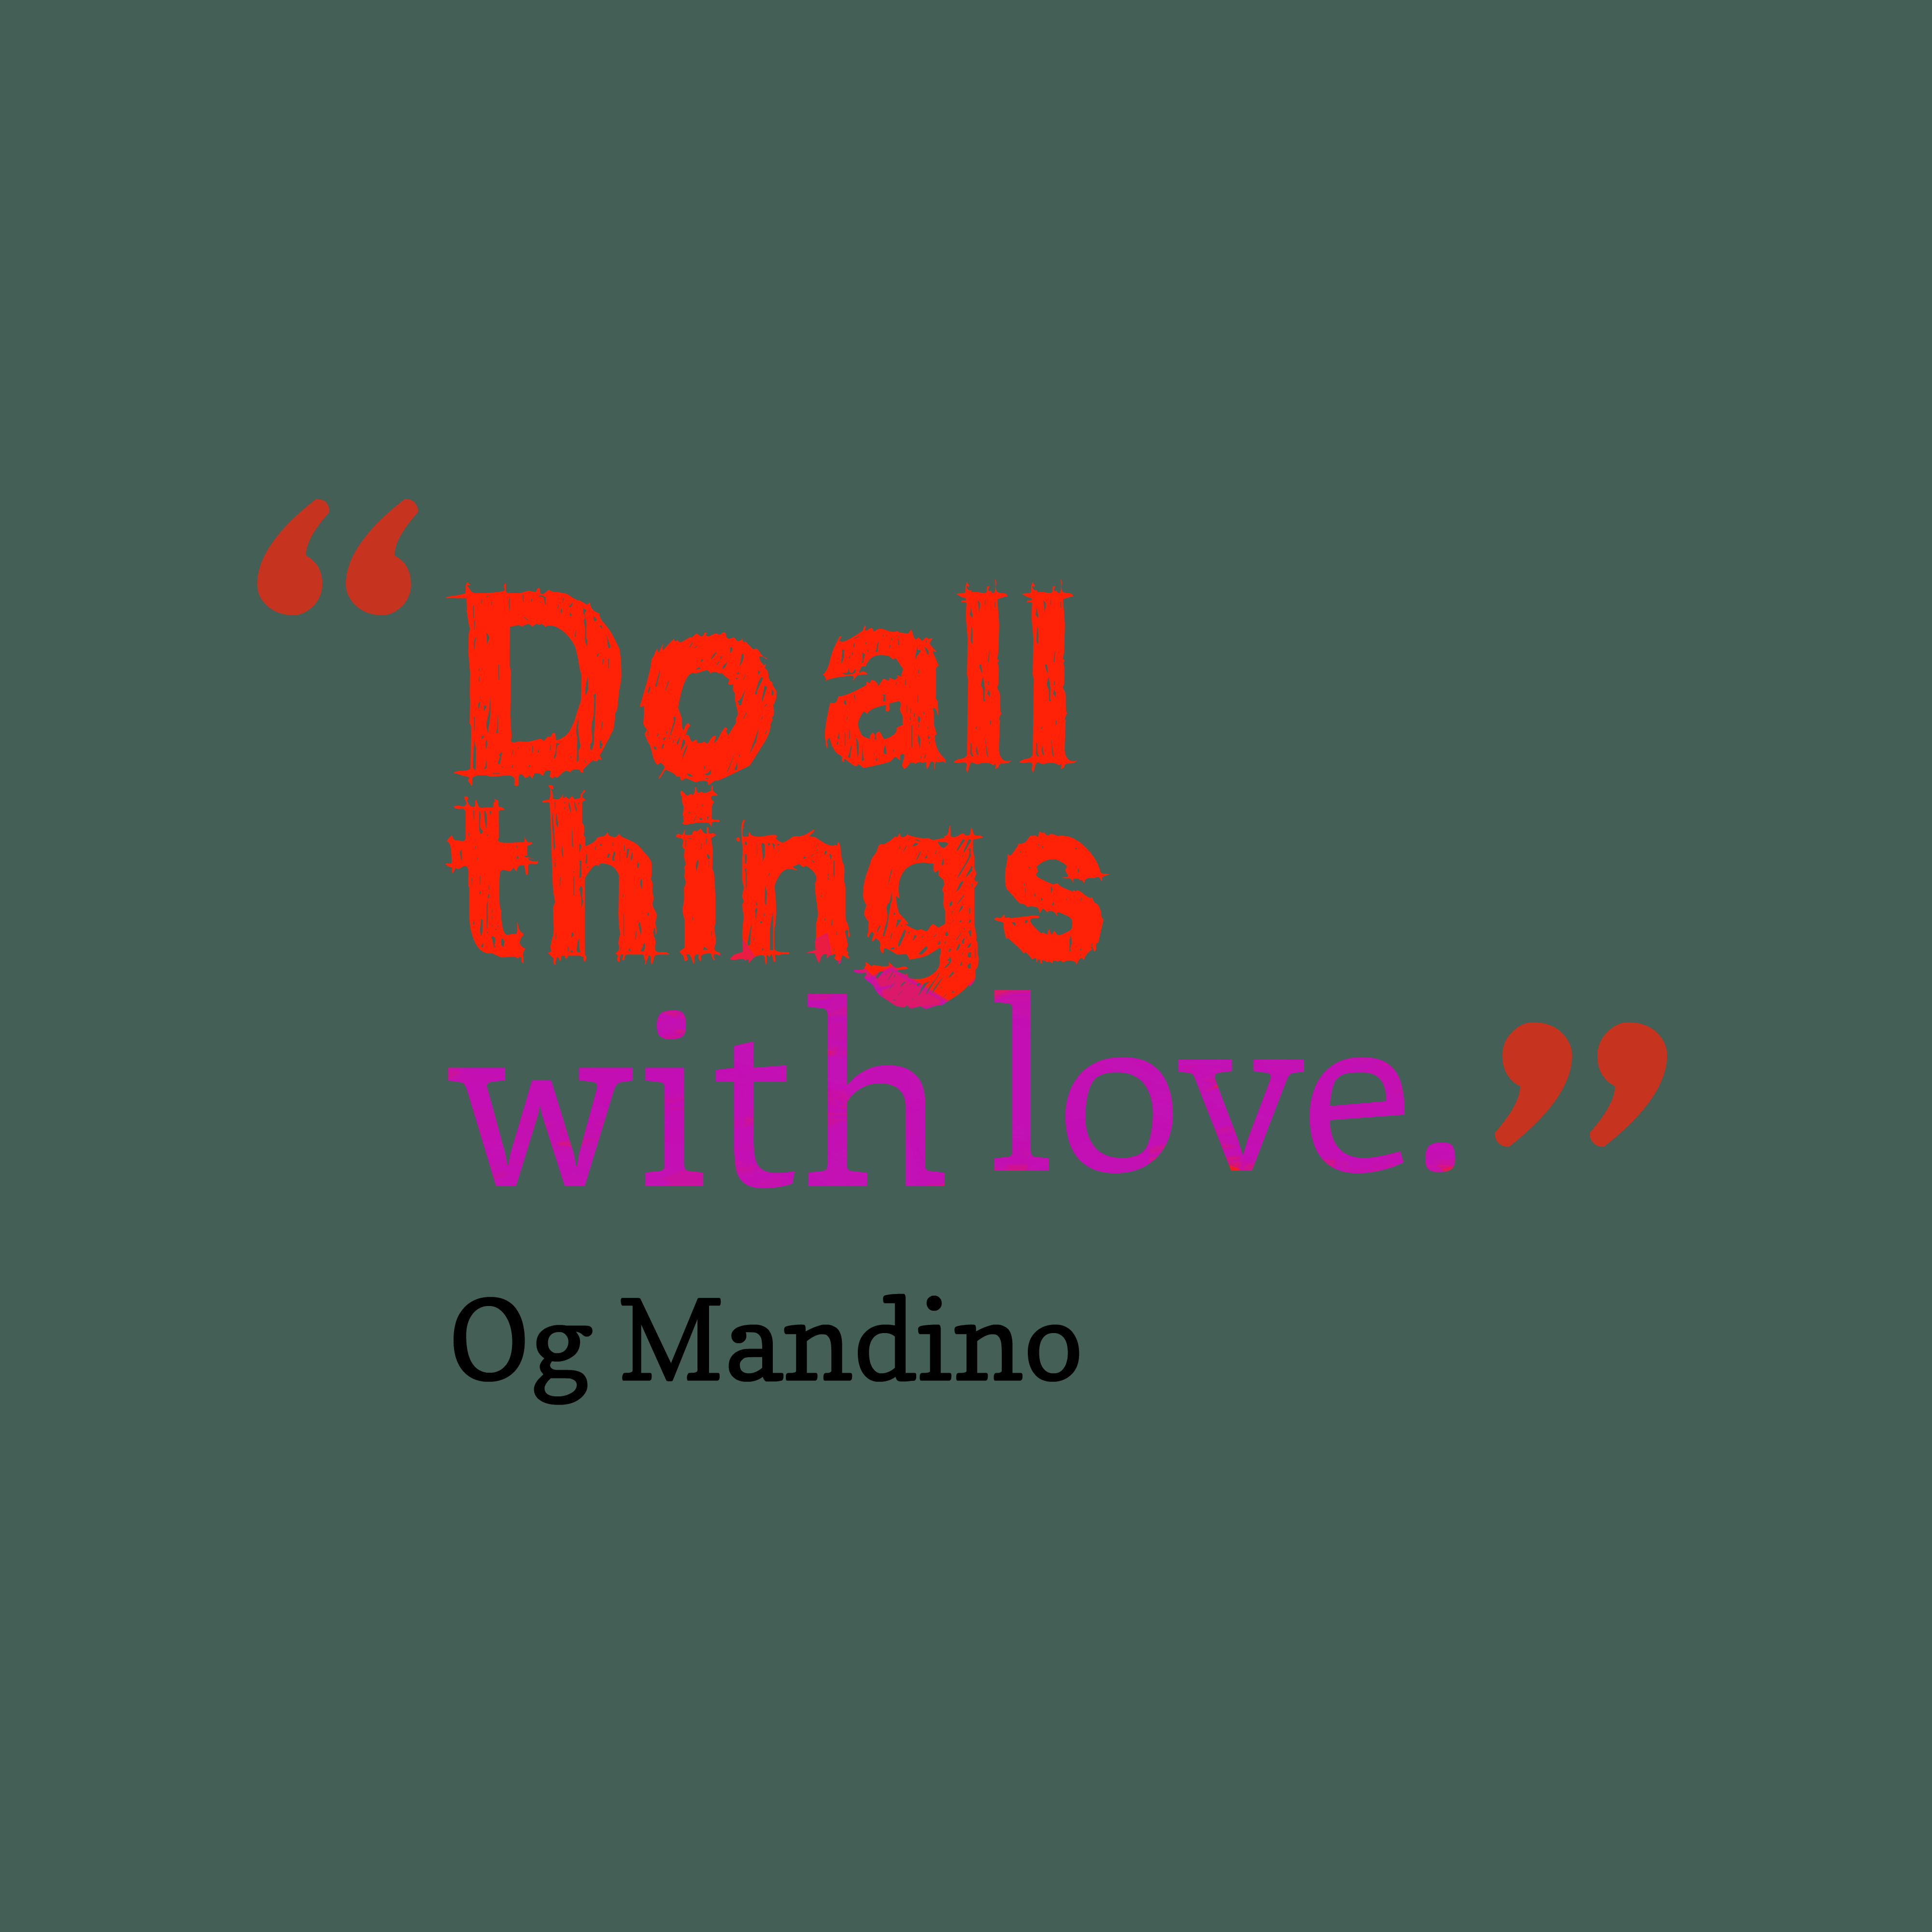 Og Mandino Quotes: Download High Resolution Quotes Picture Maker From Og